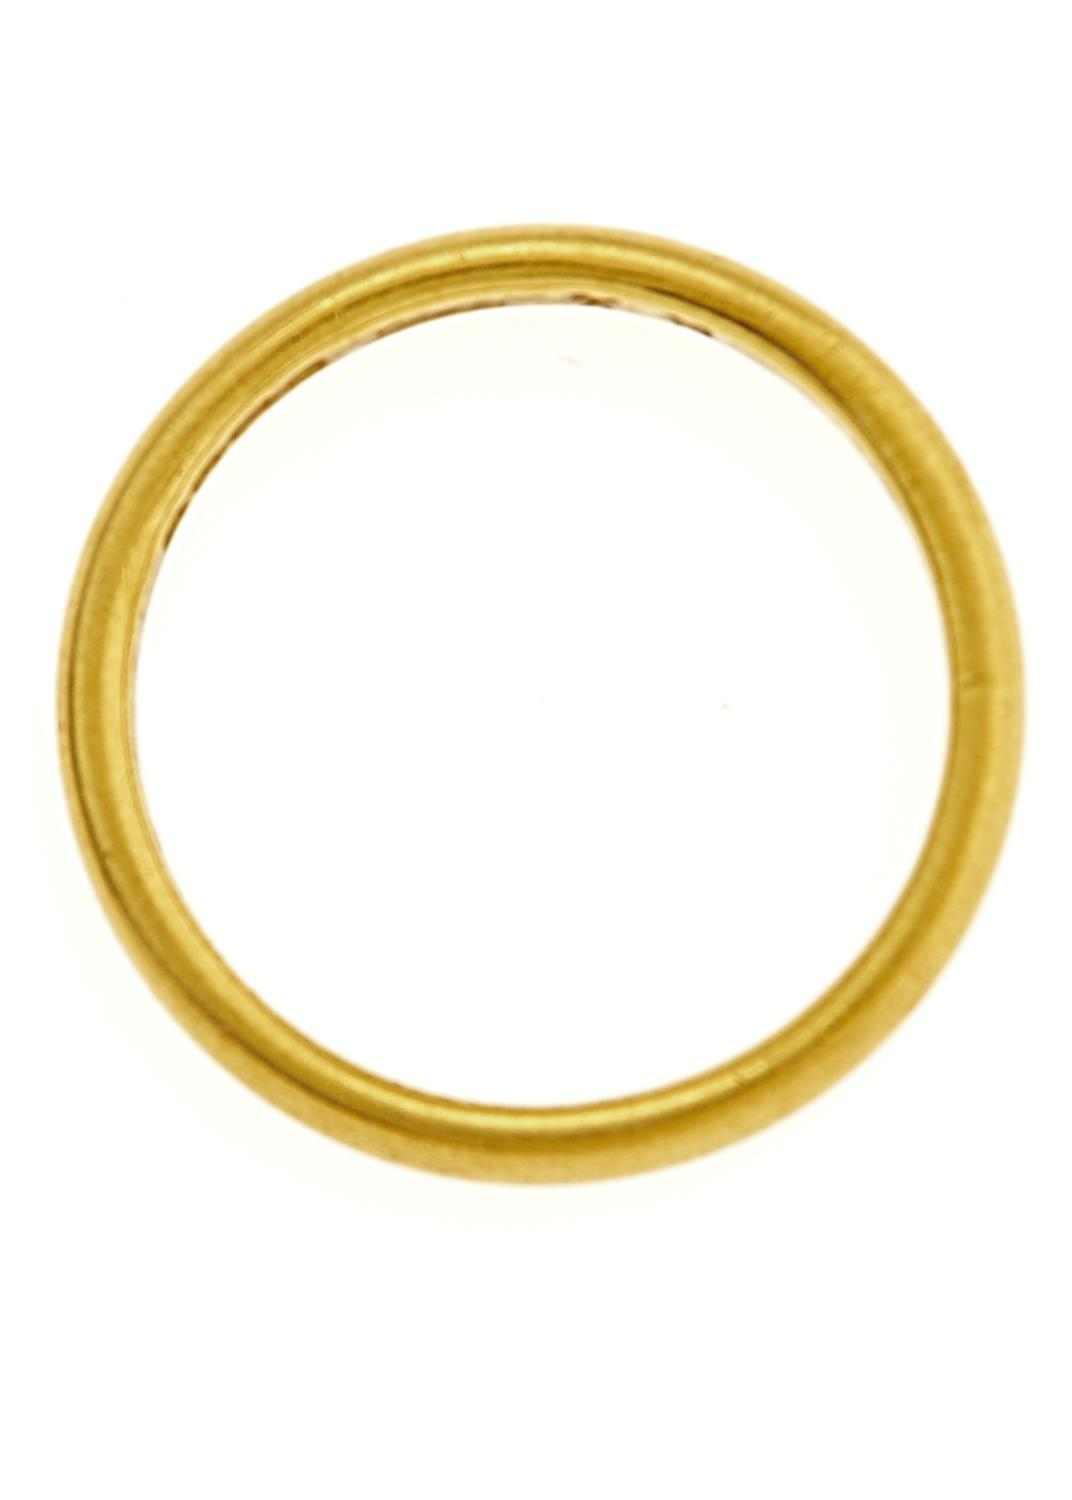 A 22CT GOLD WEDDING RING, BIRMINGHAM 1933, 4.2G, SIZE M½ Good condition - Image 2 of 2